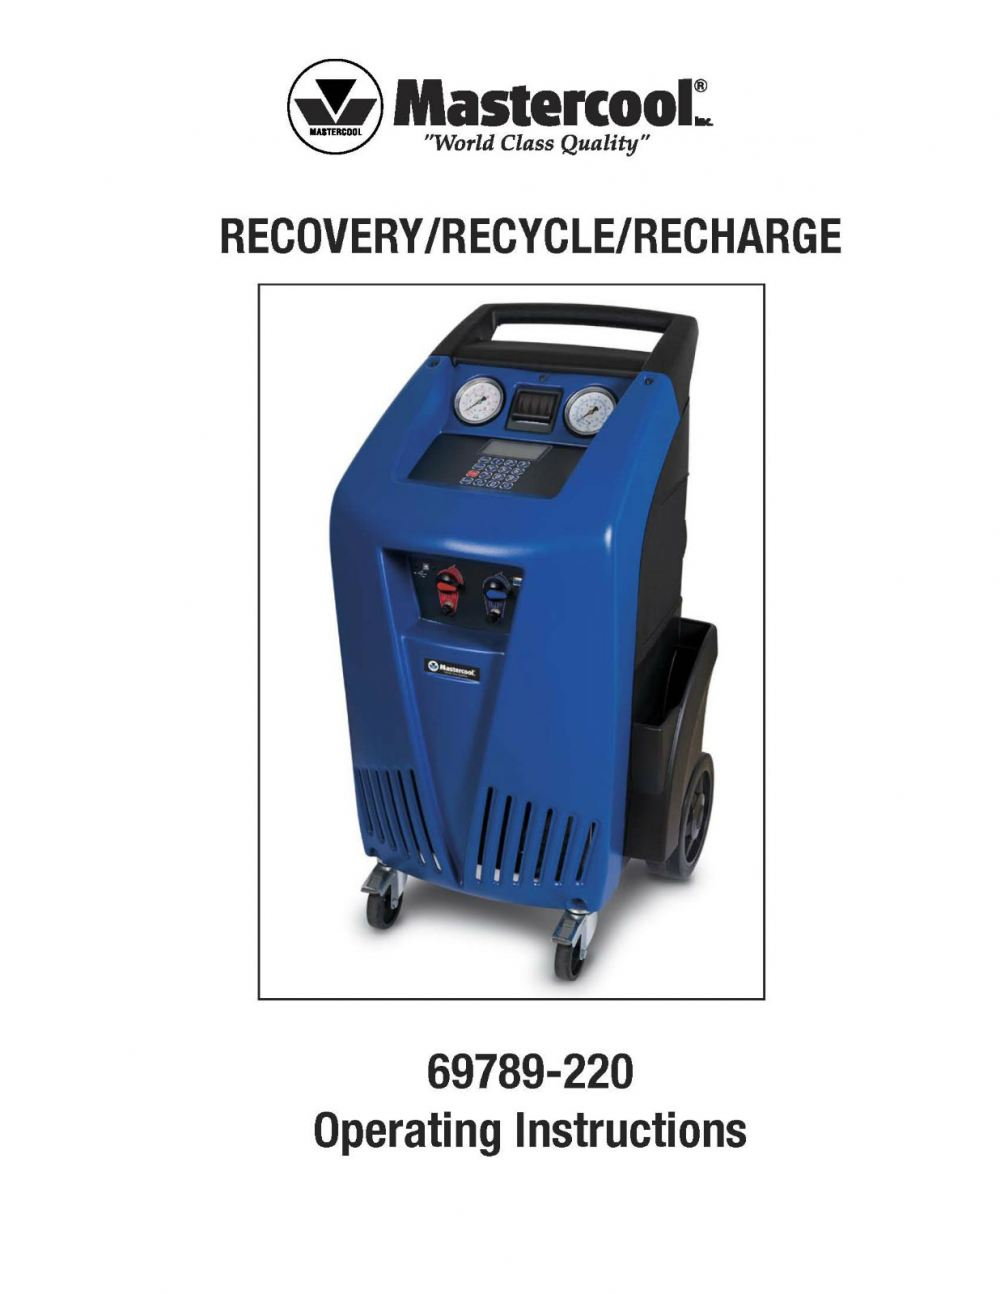 MASTERCOOL 69789-220 FULLY AUTOMATIC R134a RECOVERY/ RECYCLE/ RECHARGE Mastercool Refrigerant Recovery and Recycling Equipment Subang Jaya, Selangor, Kuala Lumpur (KL), Malaysia. Supplier, Supplies, Manufacturer, Wholesaler | Culmi Air-Cond & Refrigeration Parts Supply Sdn Bhd